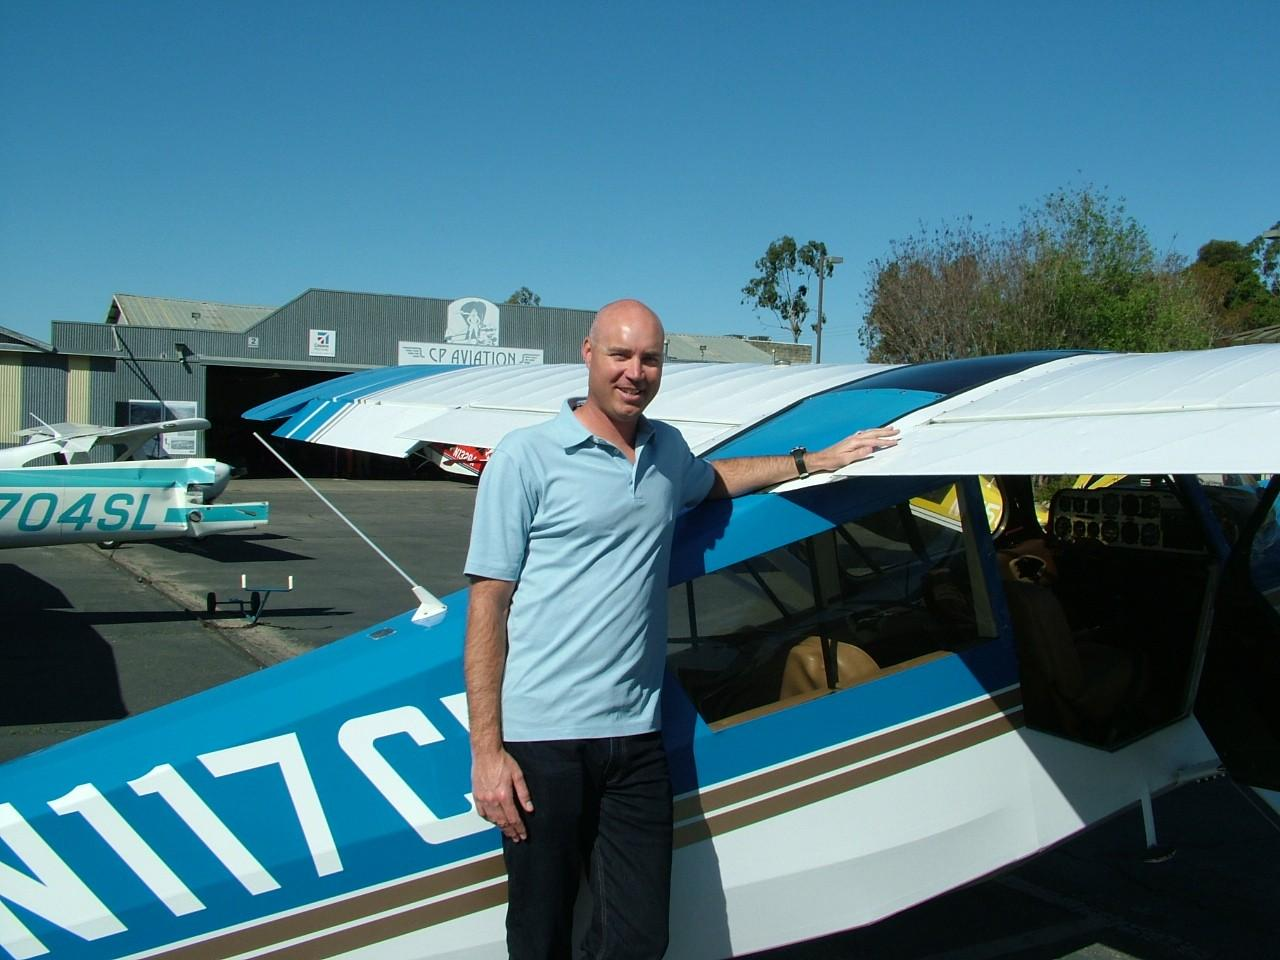 Tailwheel Endorsement - Brian Sandberg